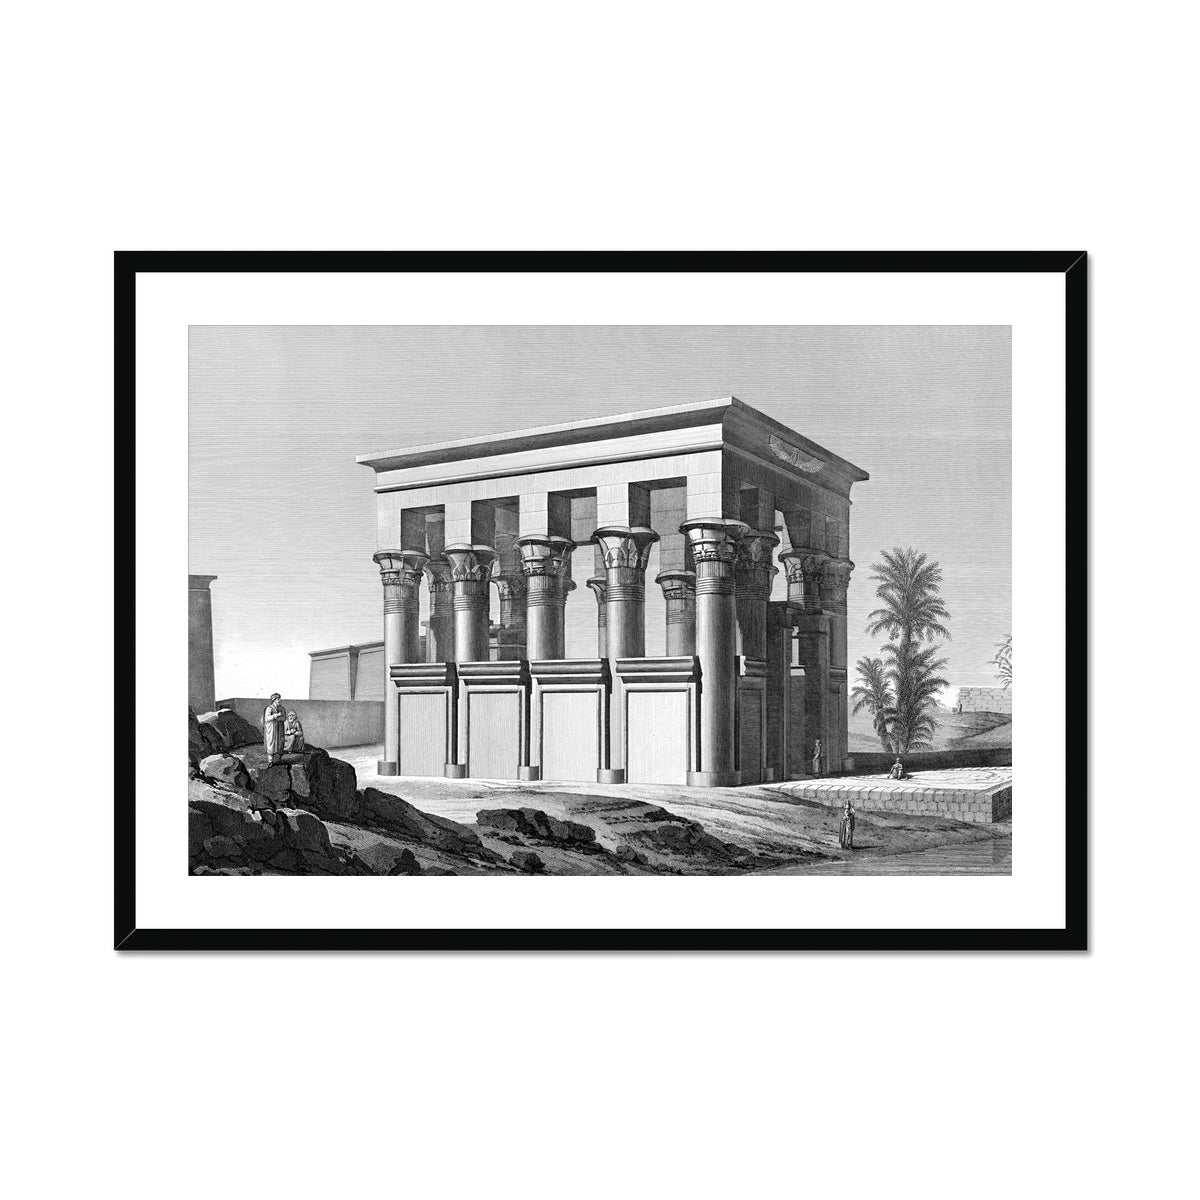 Trajan's Kiosk - Philae Egypt -  Framed & Mounted Print